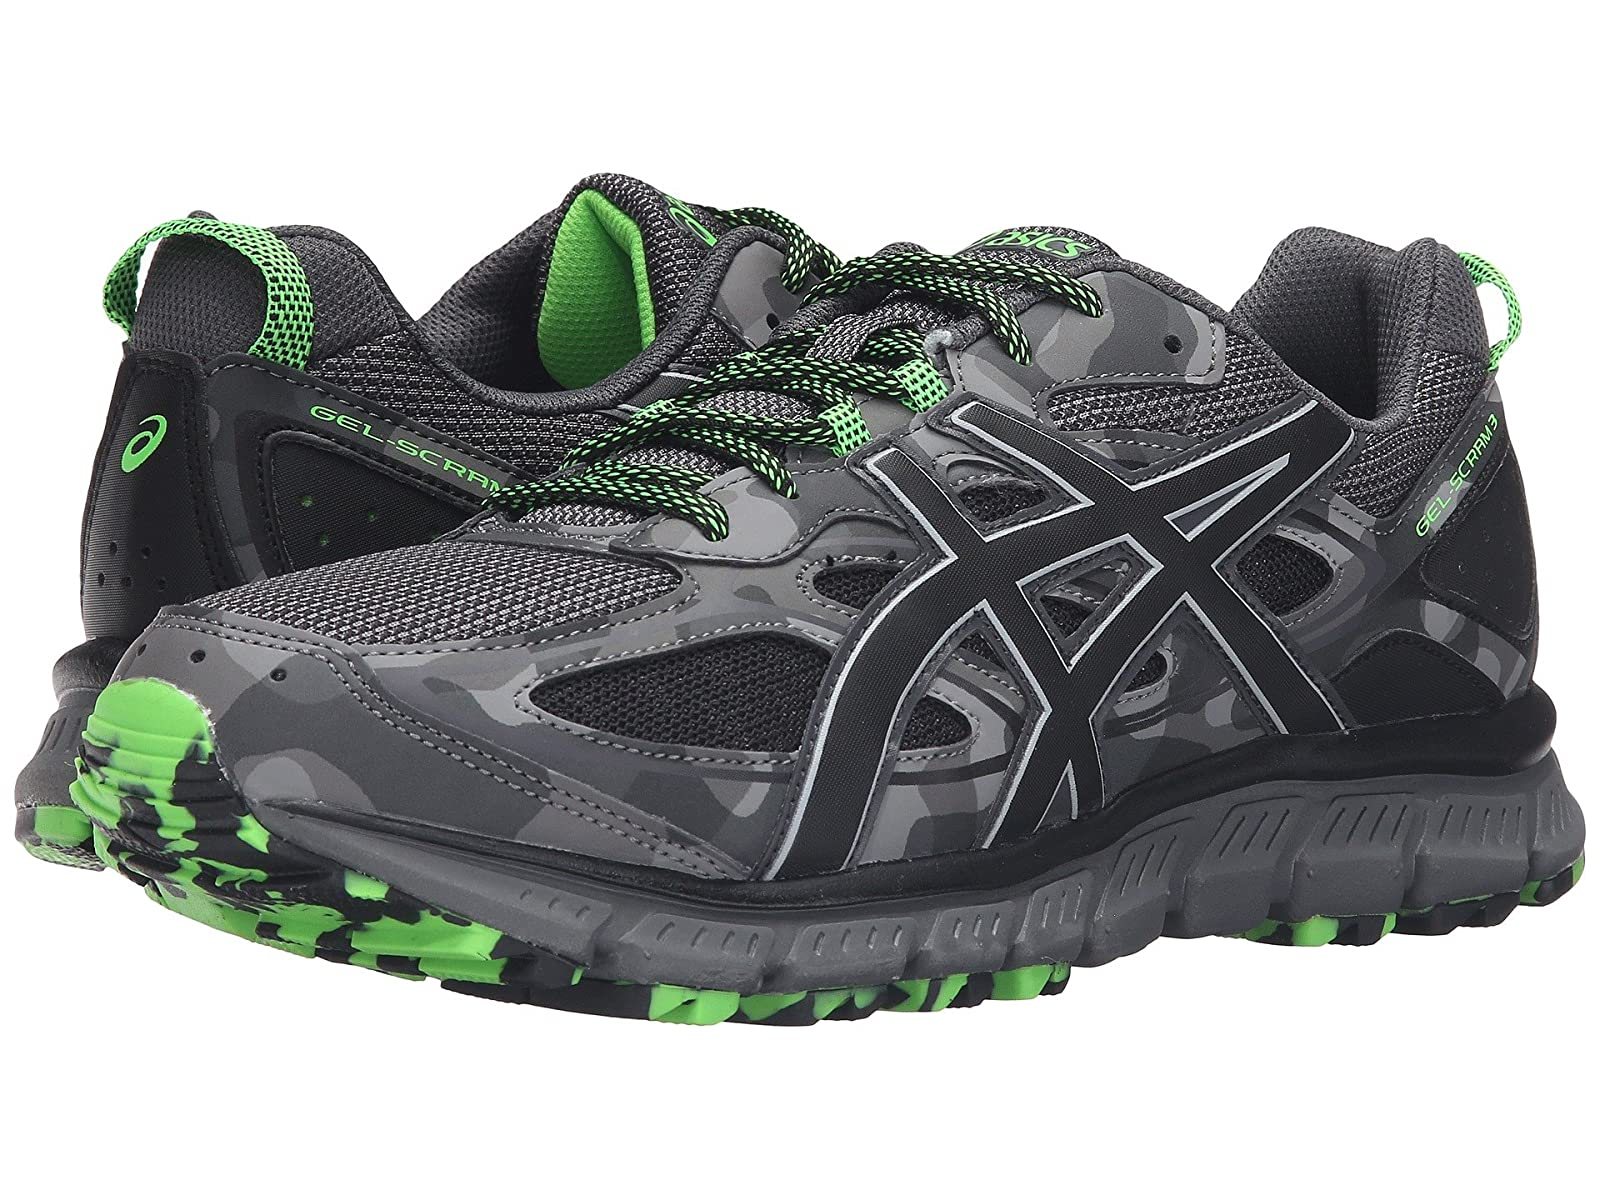 ASICS Gel-Scram® 3Atmospheric grades have affordable shoes